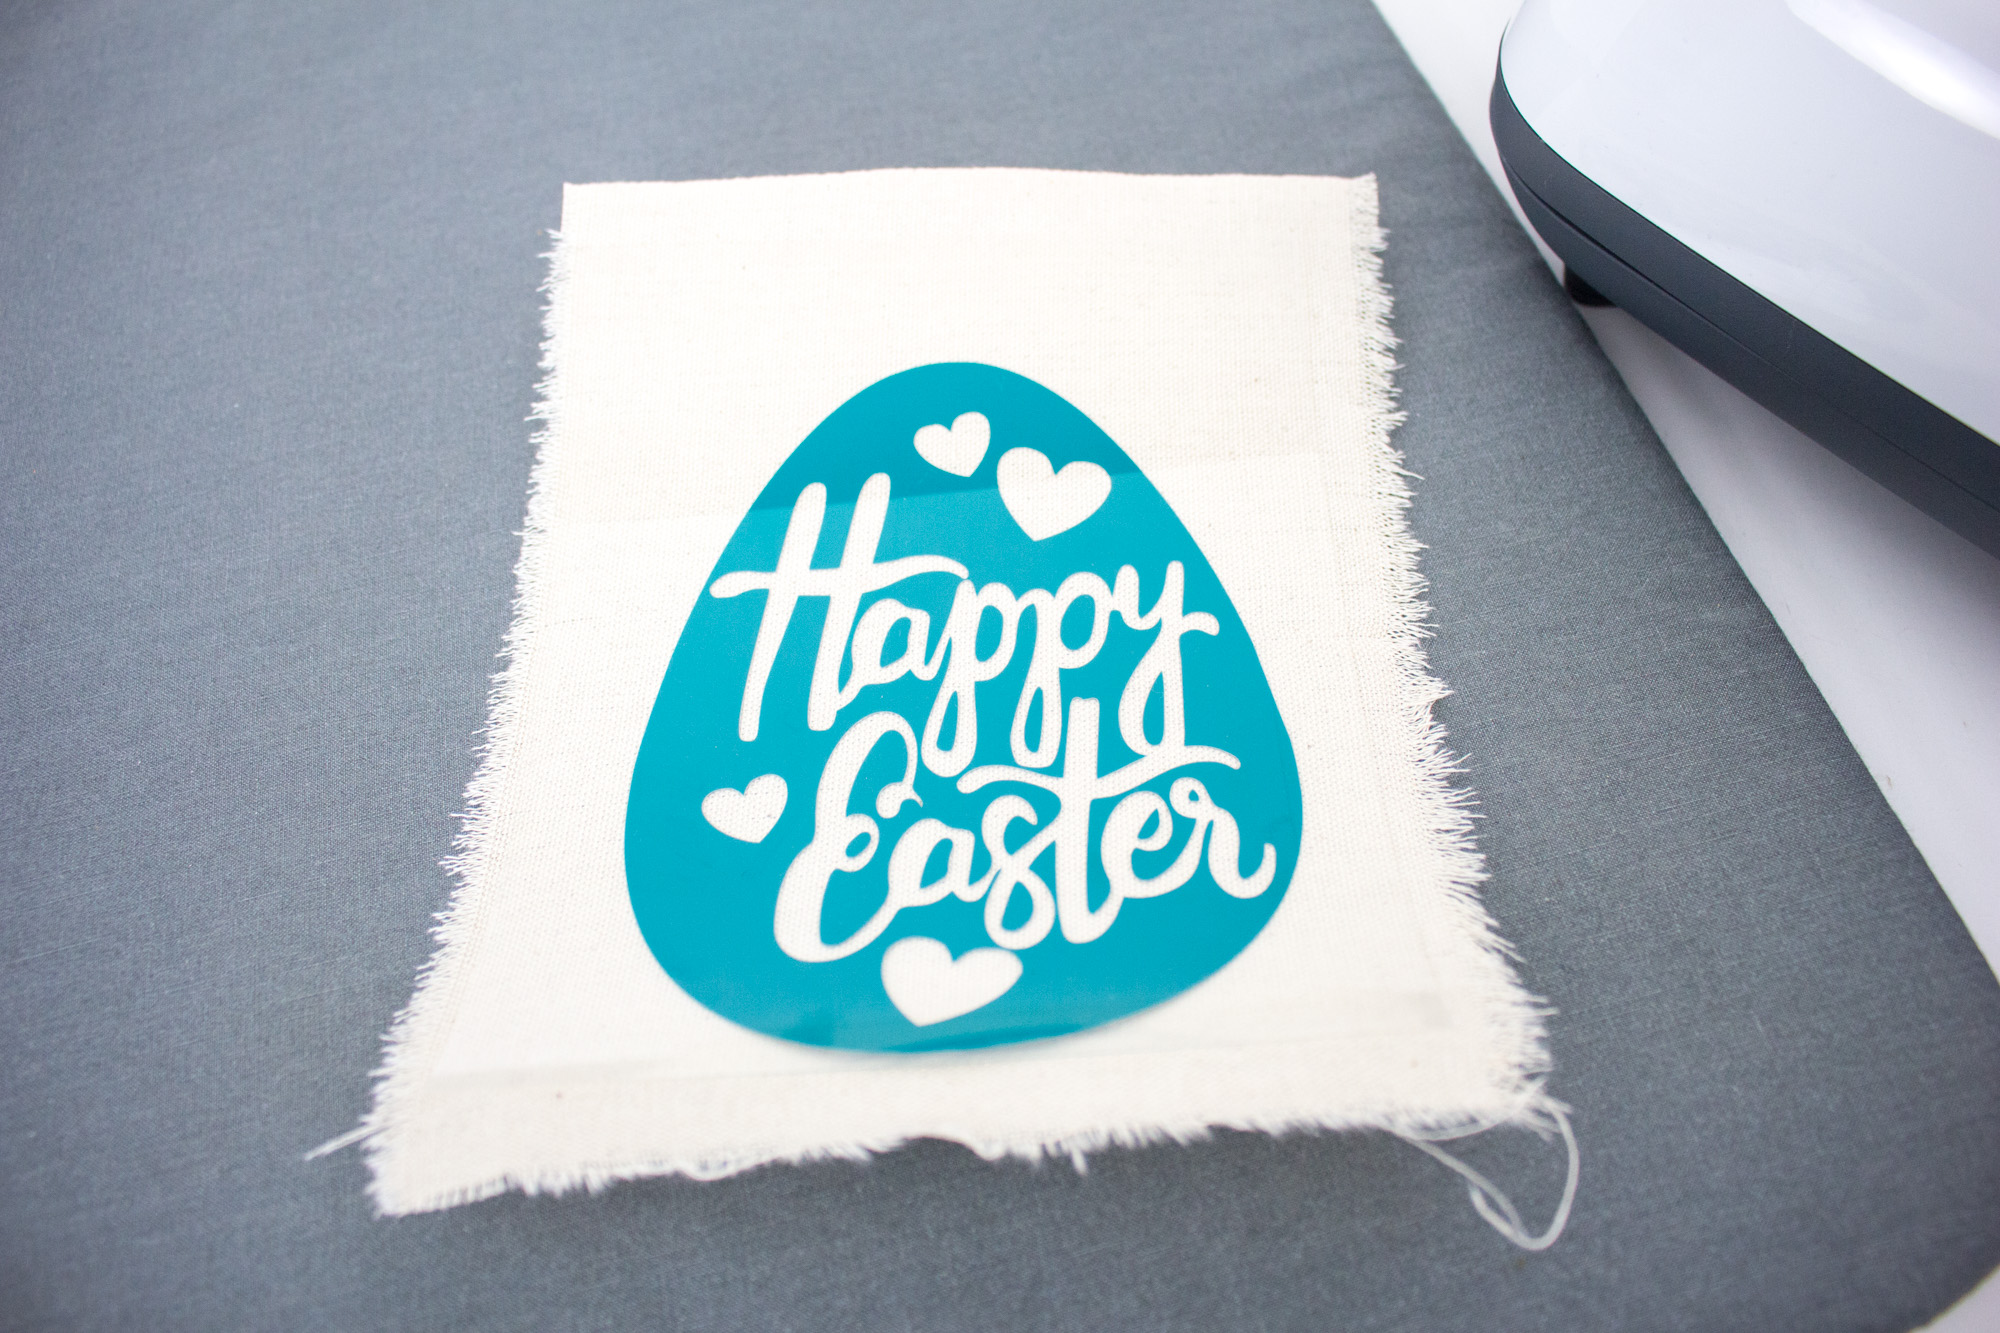 apply Cricut transfer tape image to fabric